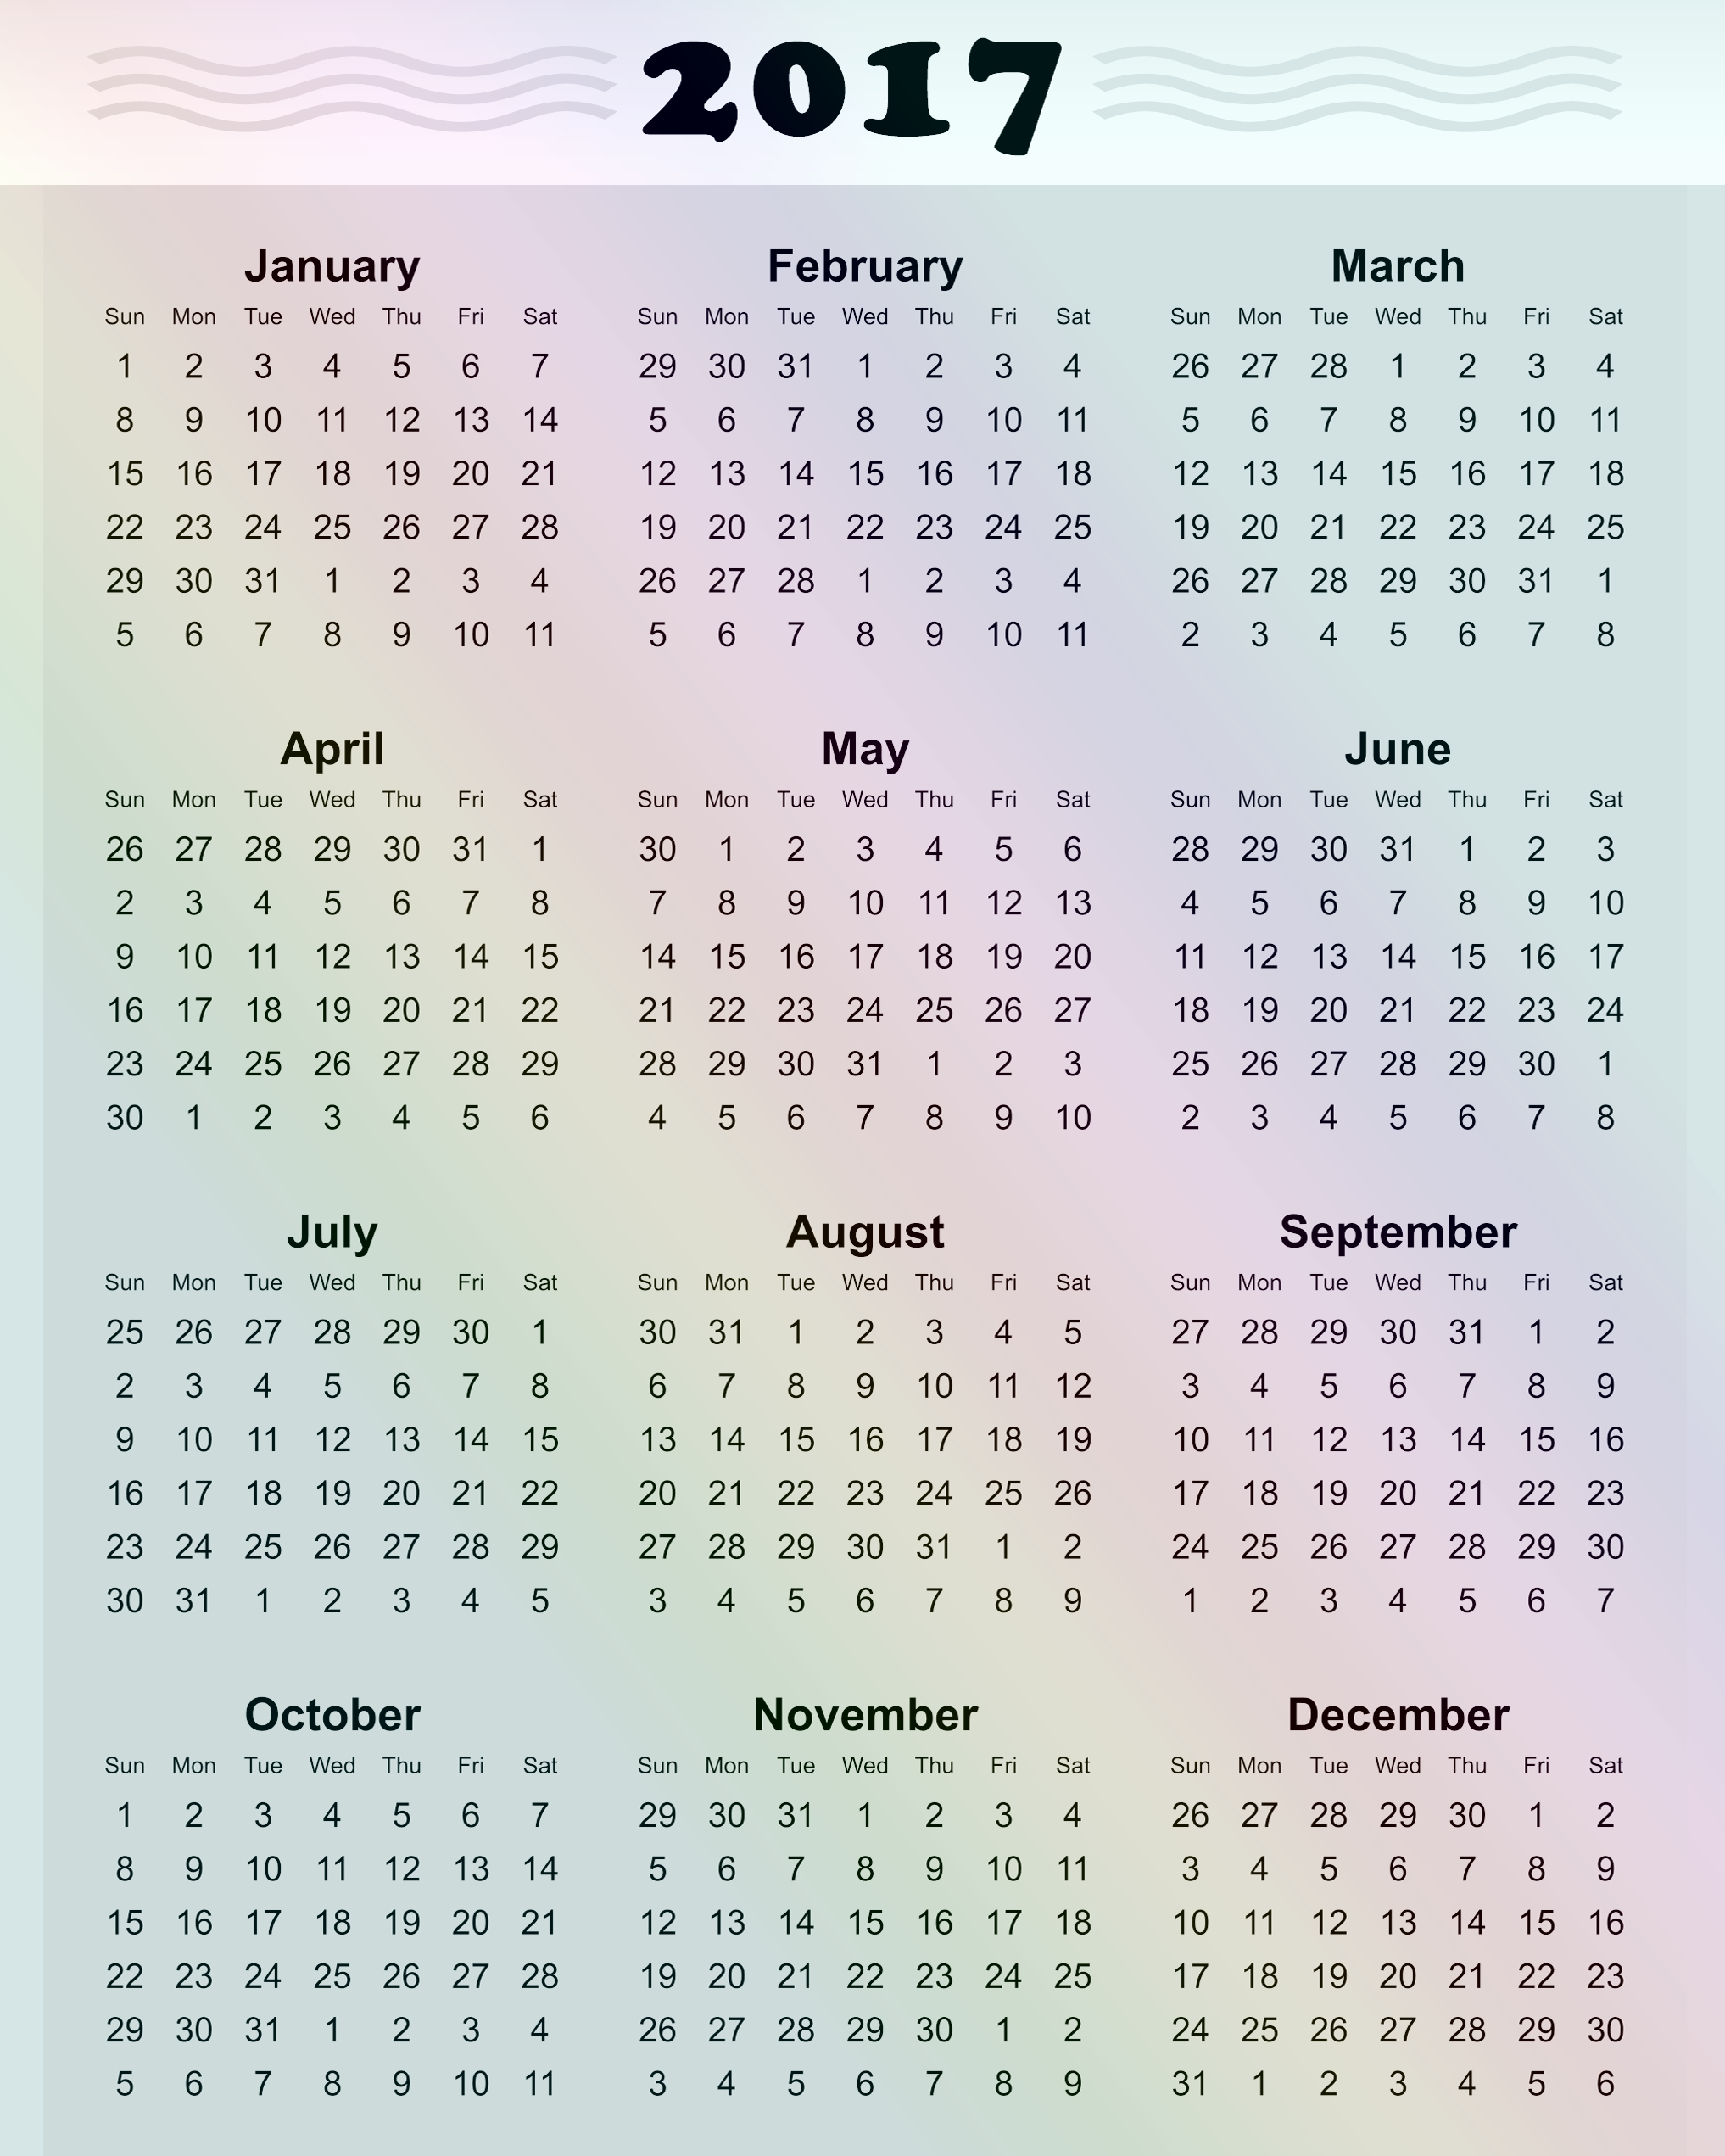 2017 Year Calendar Printable Free New 2017 Printable Calendar Template Holidays Excel & Word